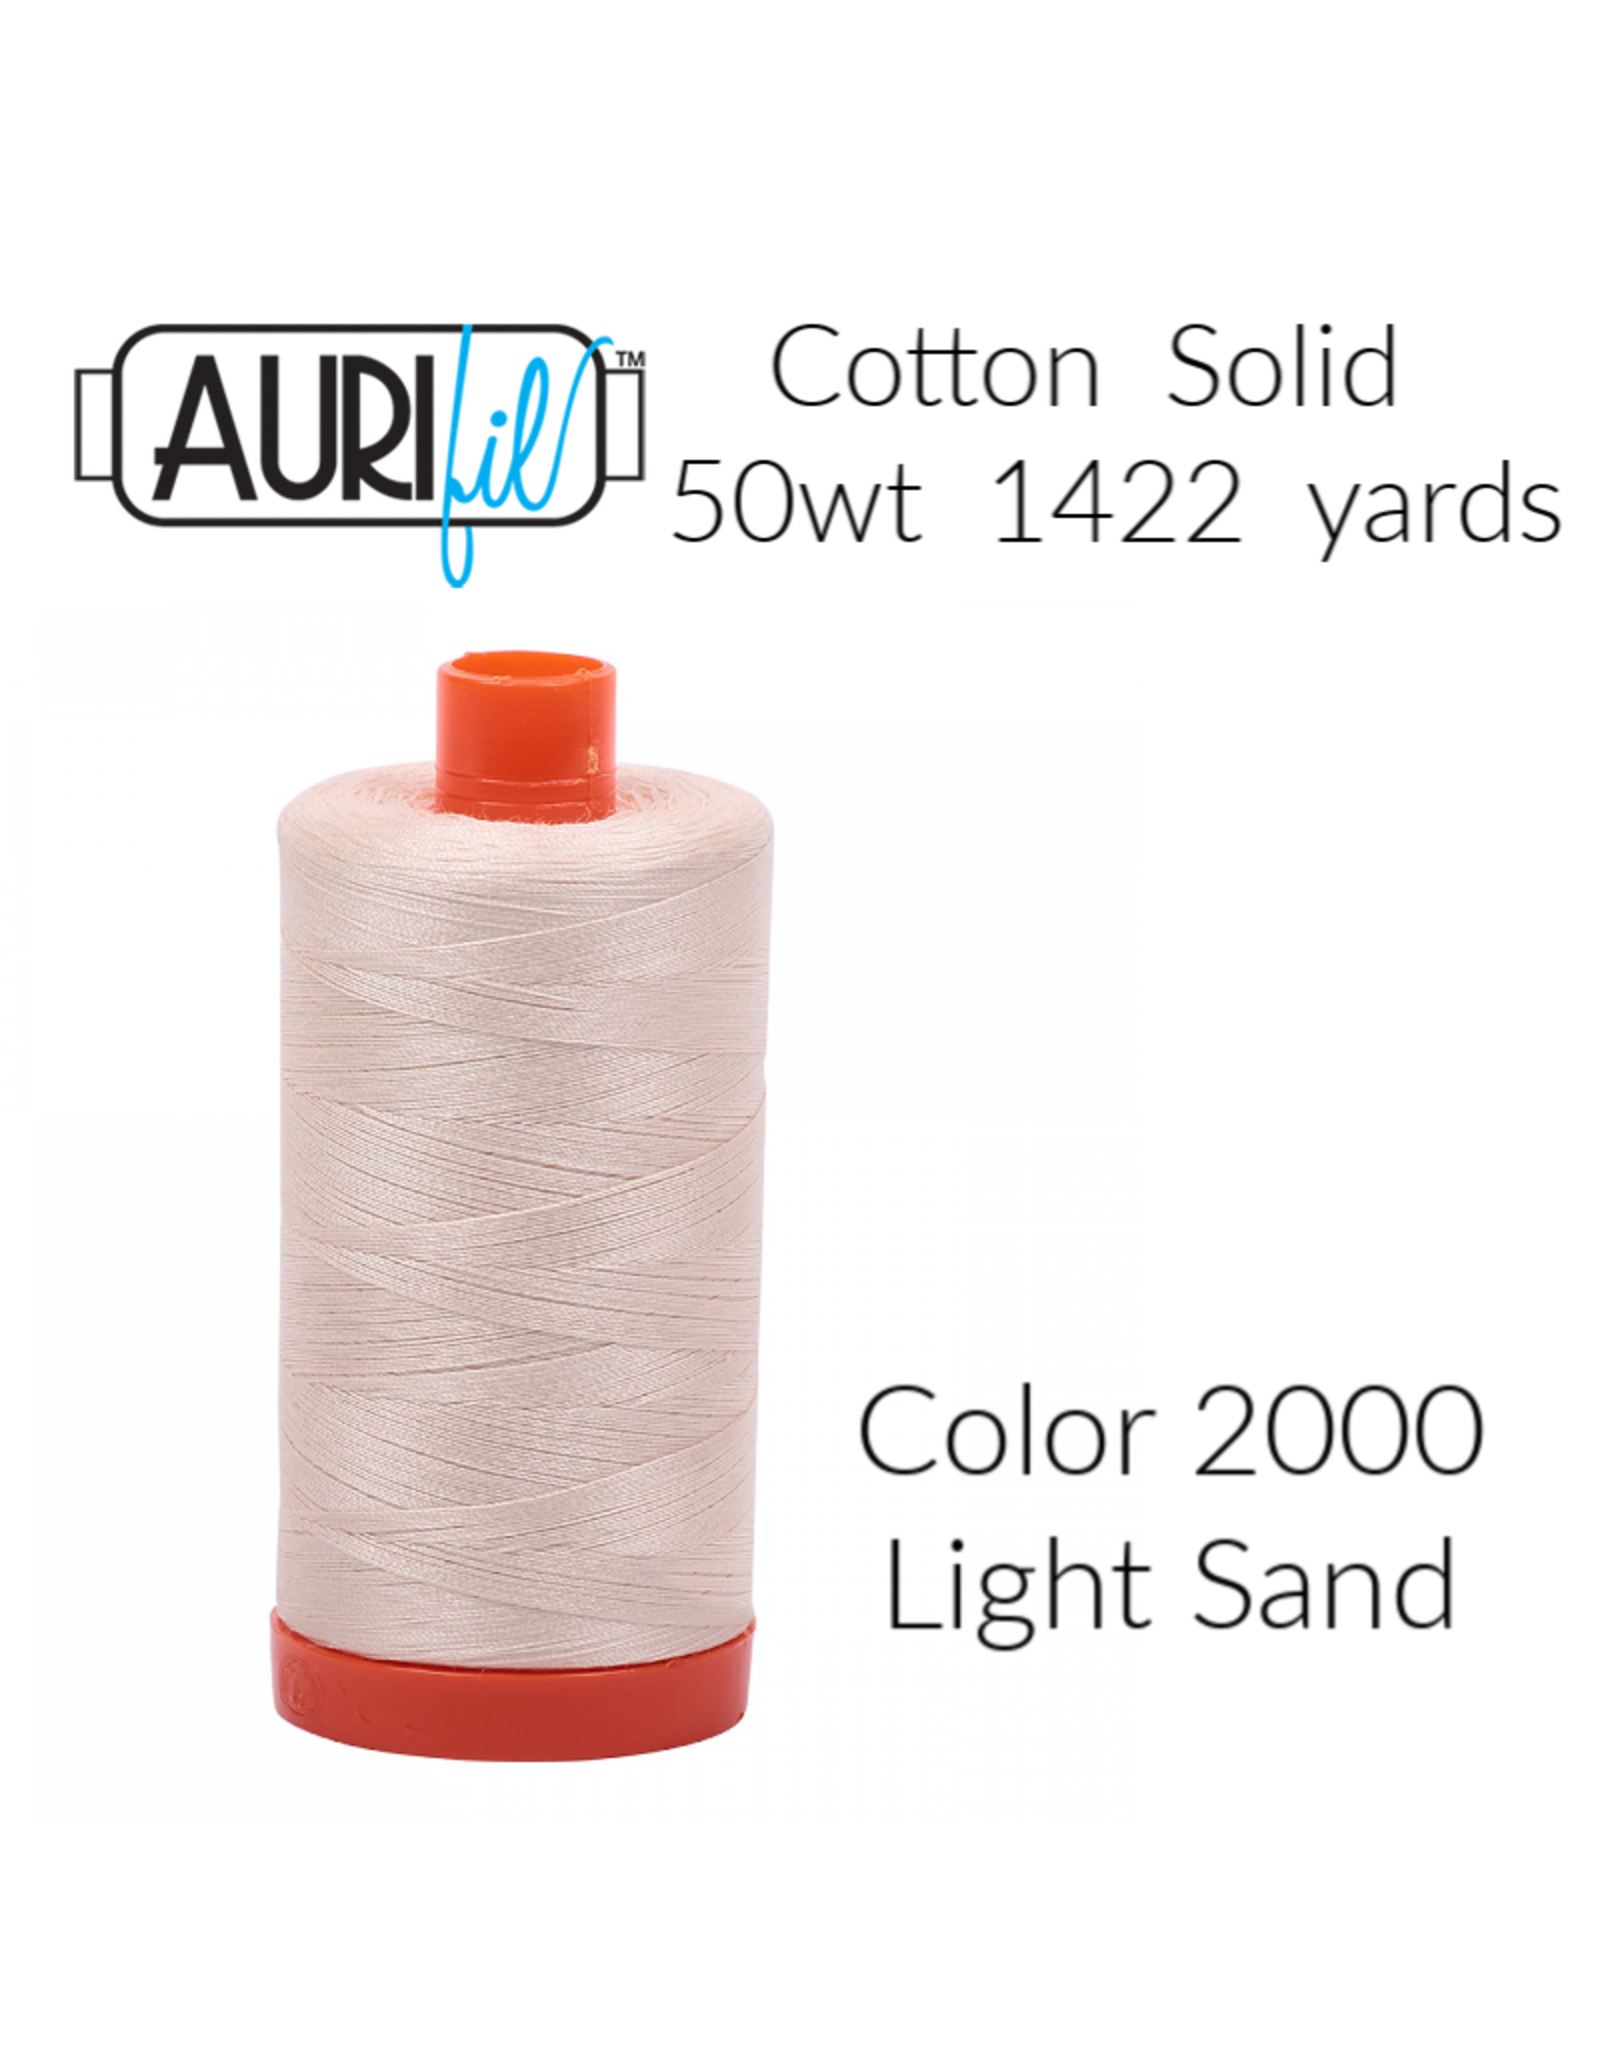 PD Aurifil Thread, 50wt, 100% Cotton Mako, Large Spool 1422 yds. Color 2000: Light Sand